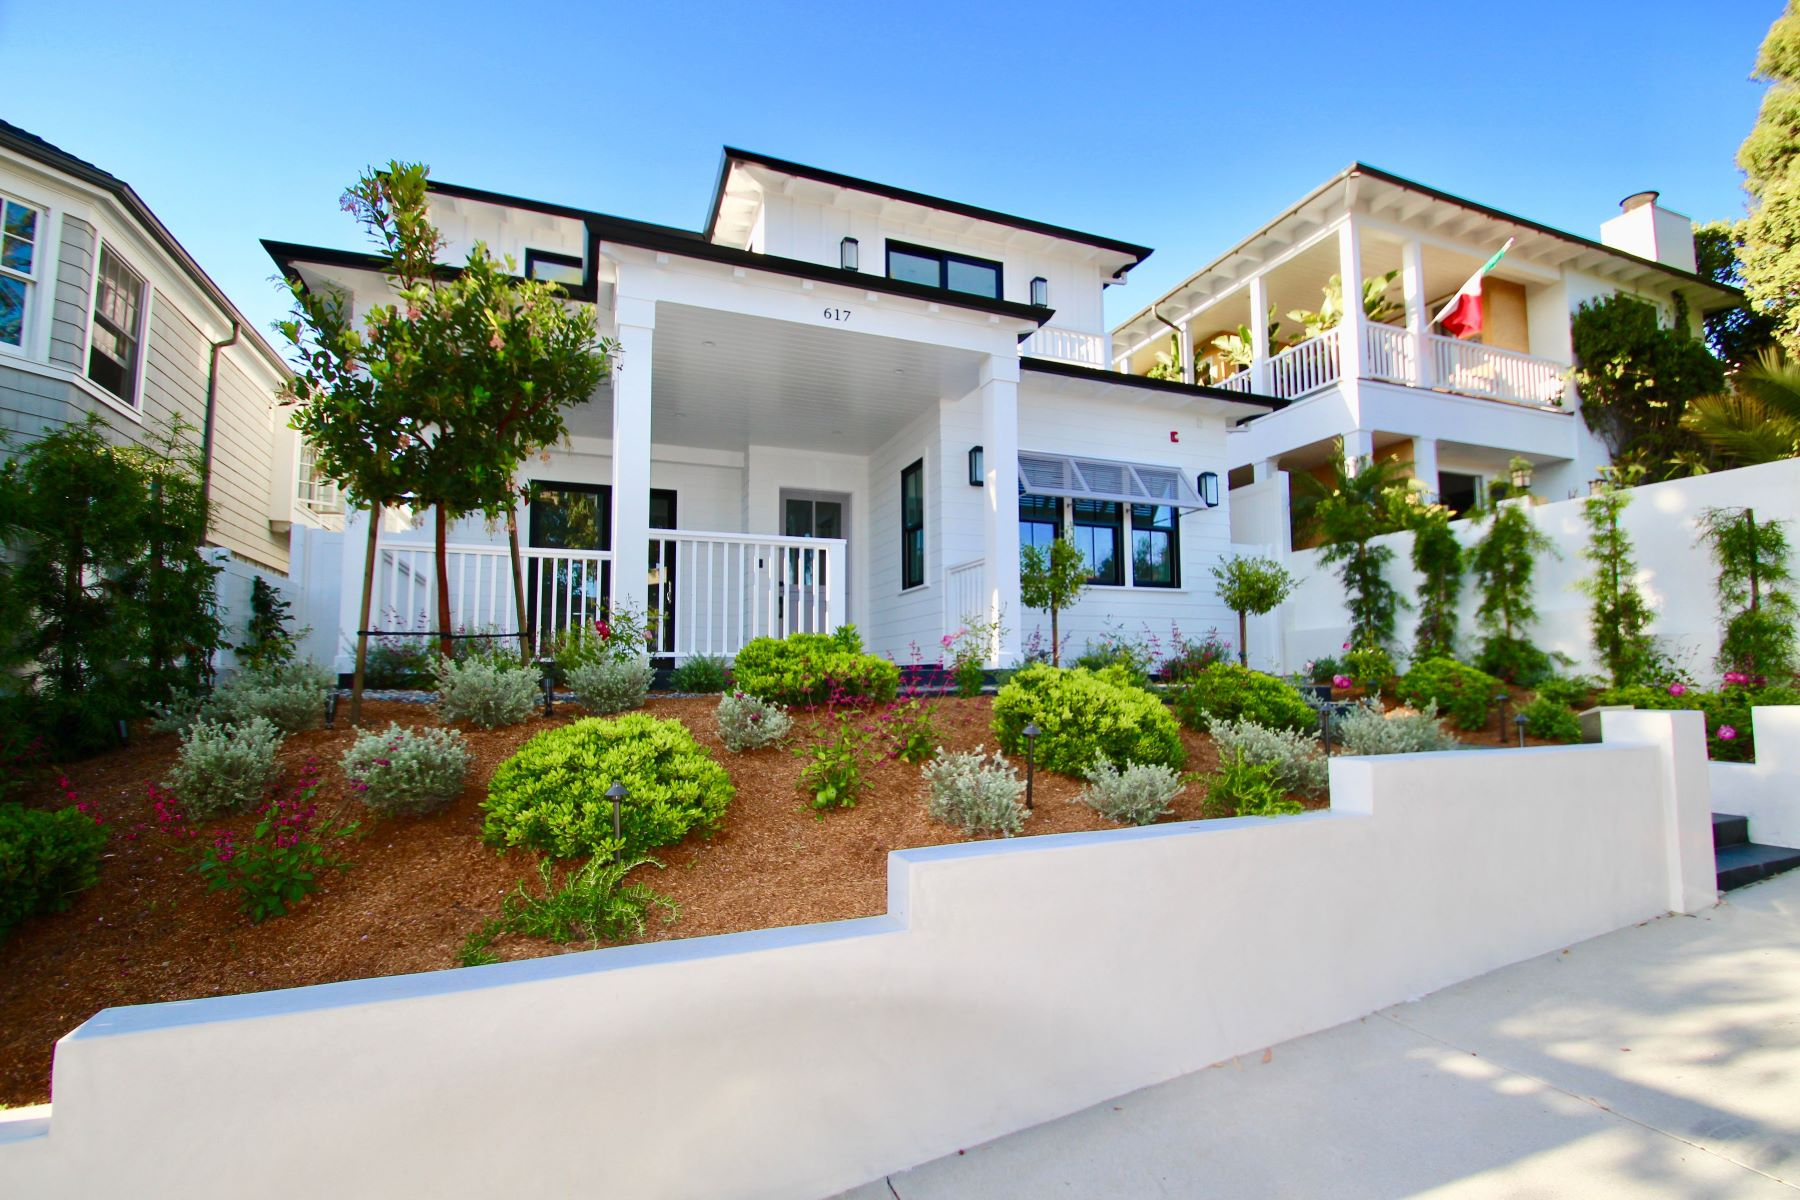 Single Family Homes for Active at 617 31st Street, Manhattan Beach, CA 90266 617 31st Street Manhattan Beach, California 90266 United States